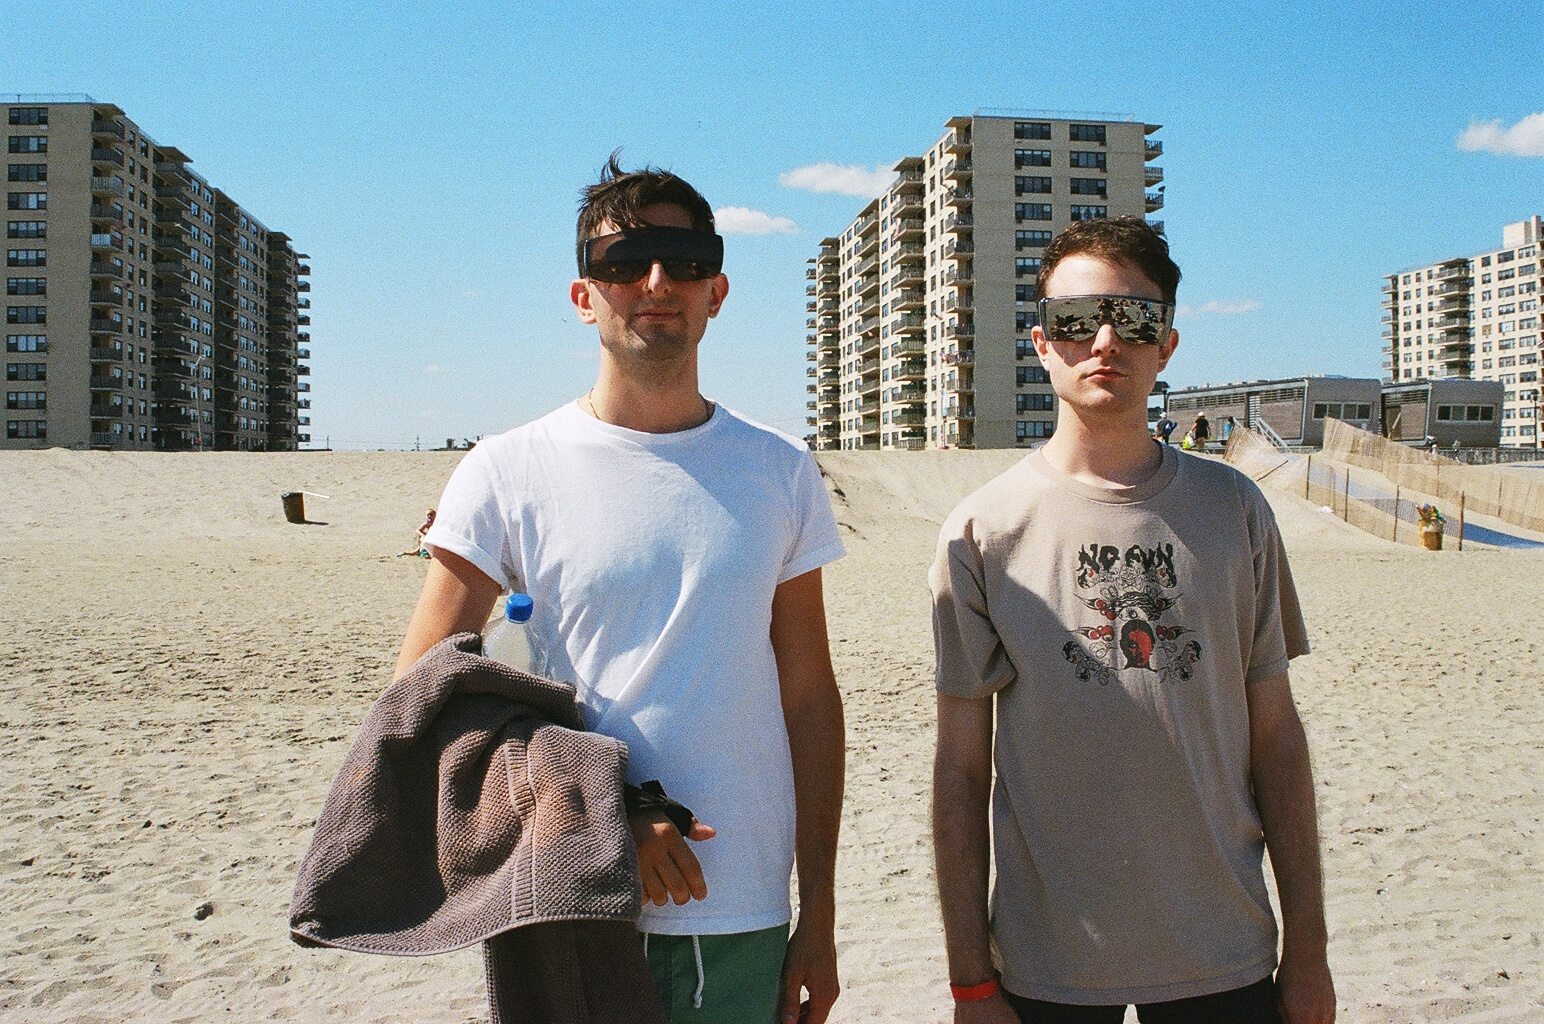 Josh + Party Tom in matching shades in front of the lovely ghetto by the sea.